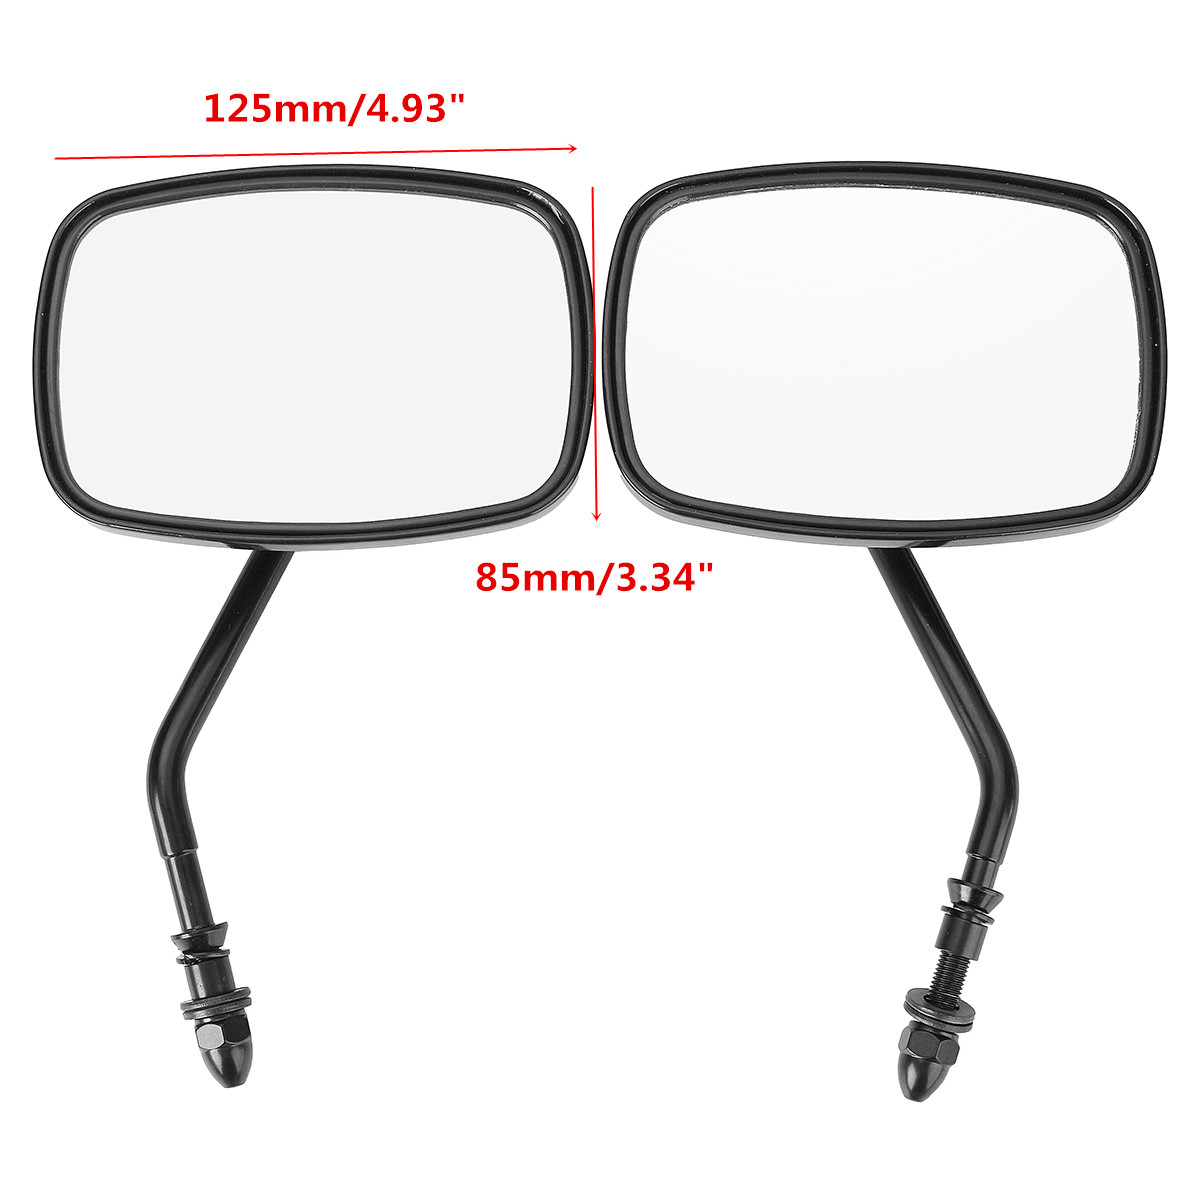 New Pair Rear View Side Mirrors Motorcycle Bike Universal